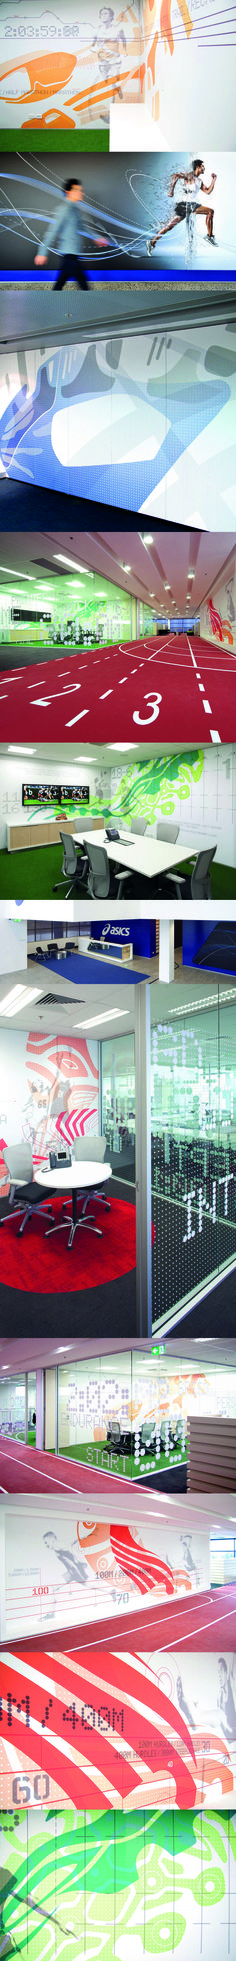 Australian HQ Asics  Sportswear giant ASICS, required dynamic graphic branding for their new 3,000sqm Australian HQ and distribution centre. We chose to highlight the company's dual focus of 'movement and technology' – reminding staff of the core brand values whilst simultaneously providing a stimulating and inspiring space for visitors and staff alike.